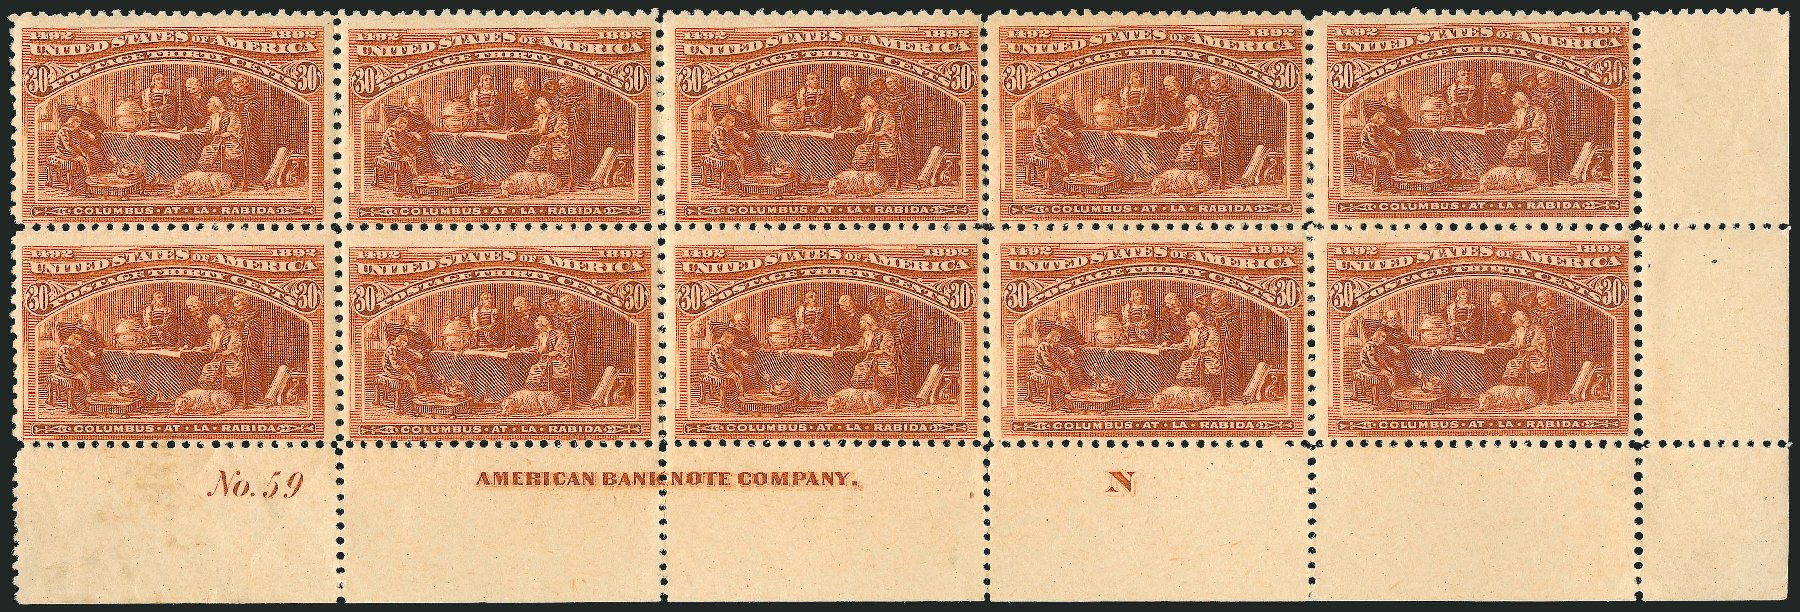 Value of US Stamps Scott Catalogue 239: 30c 1893 Columbian Exposition. Robert Siegel Auction Galleries, Apr 2015, Sale 1096, Lot 417